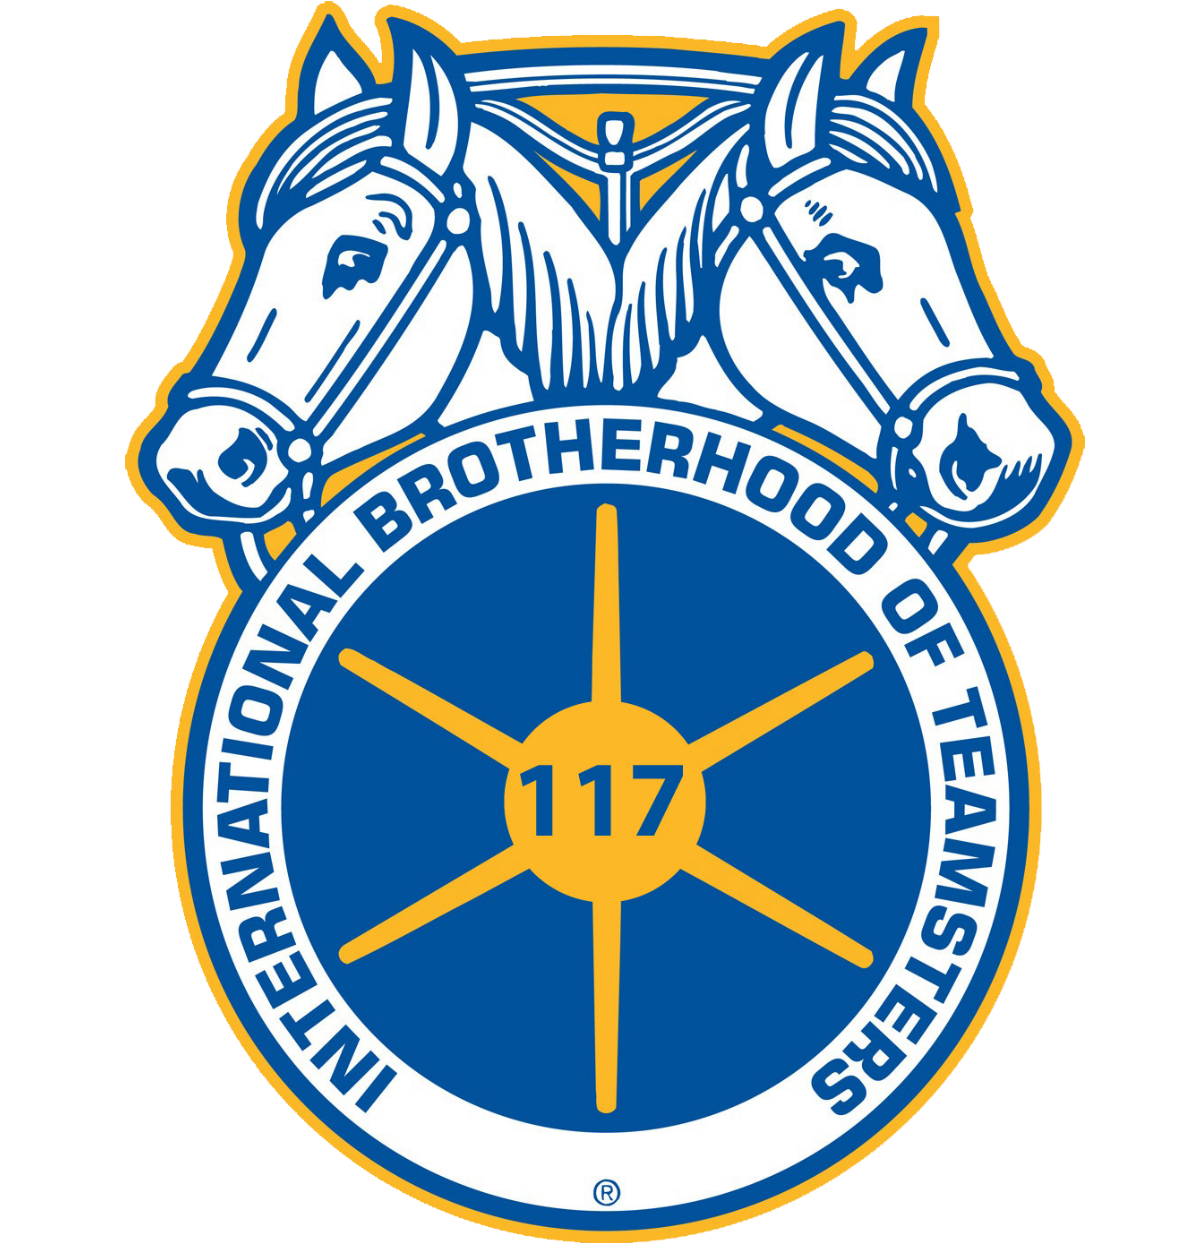 teamsters117.png